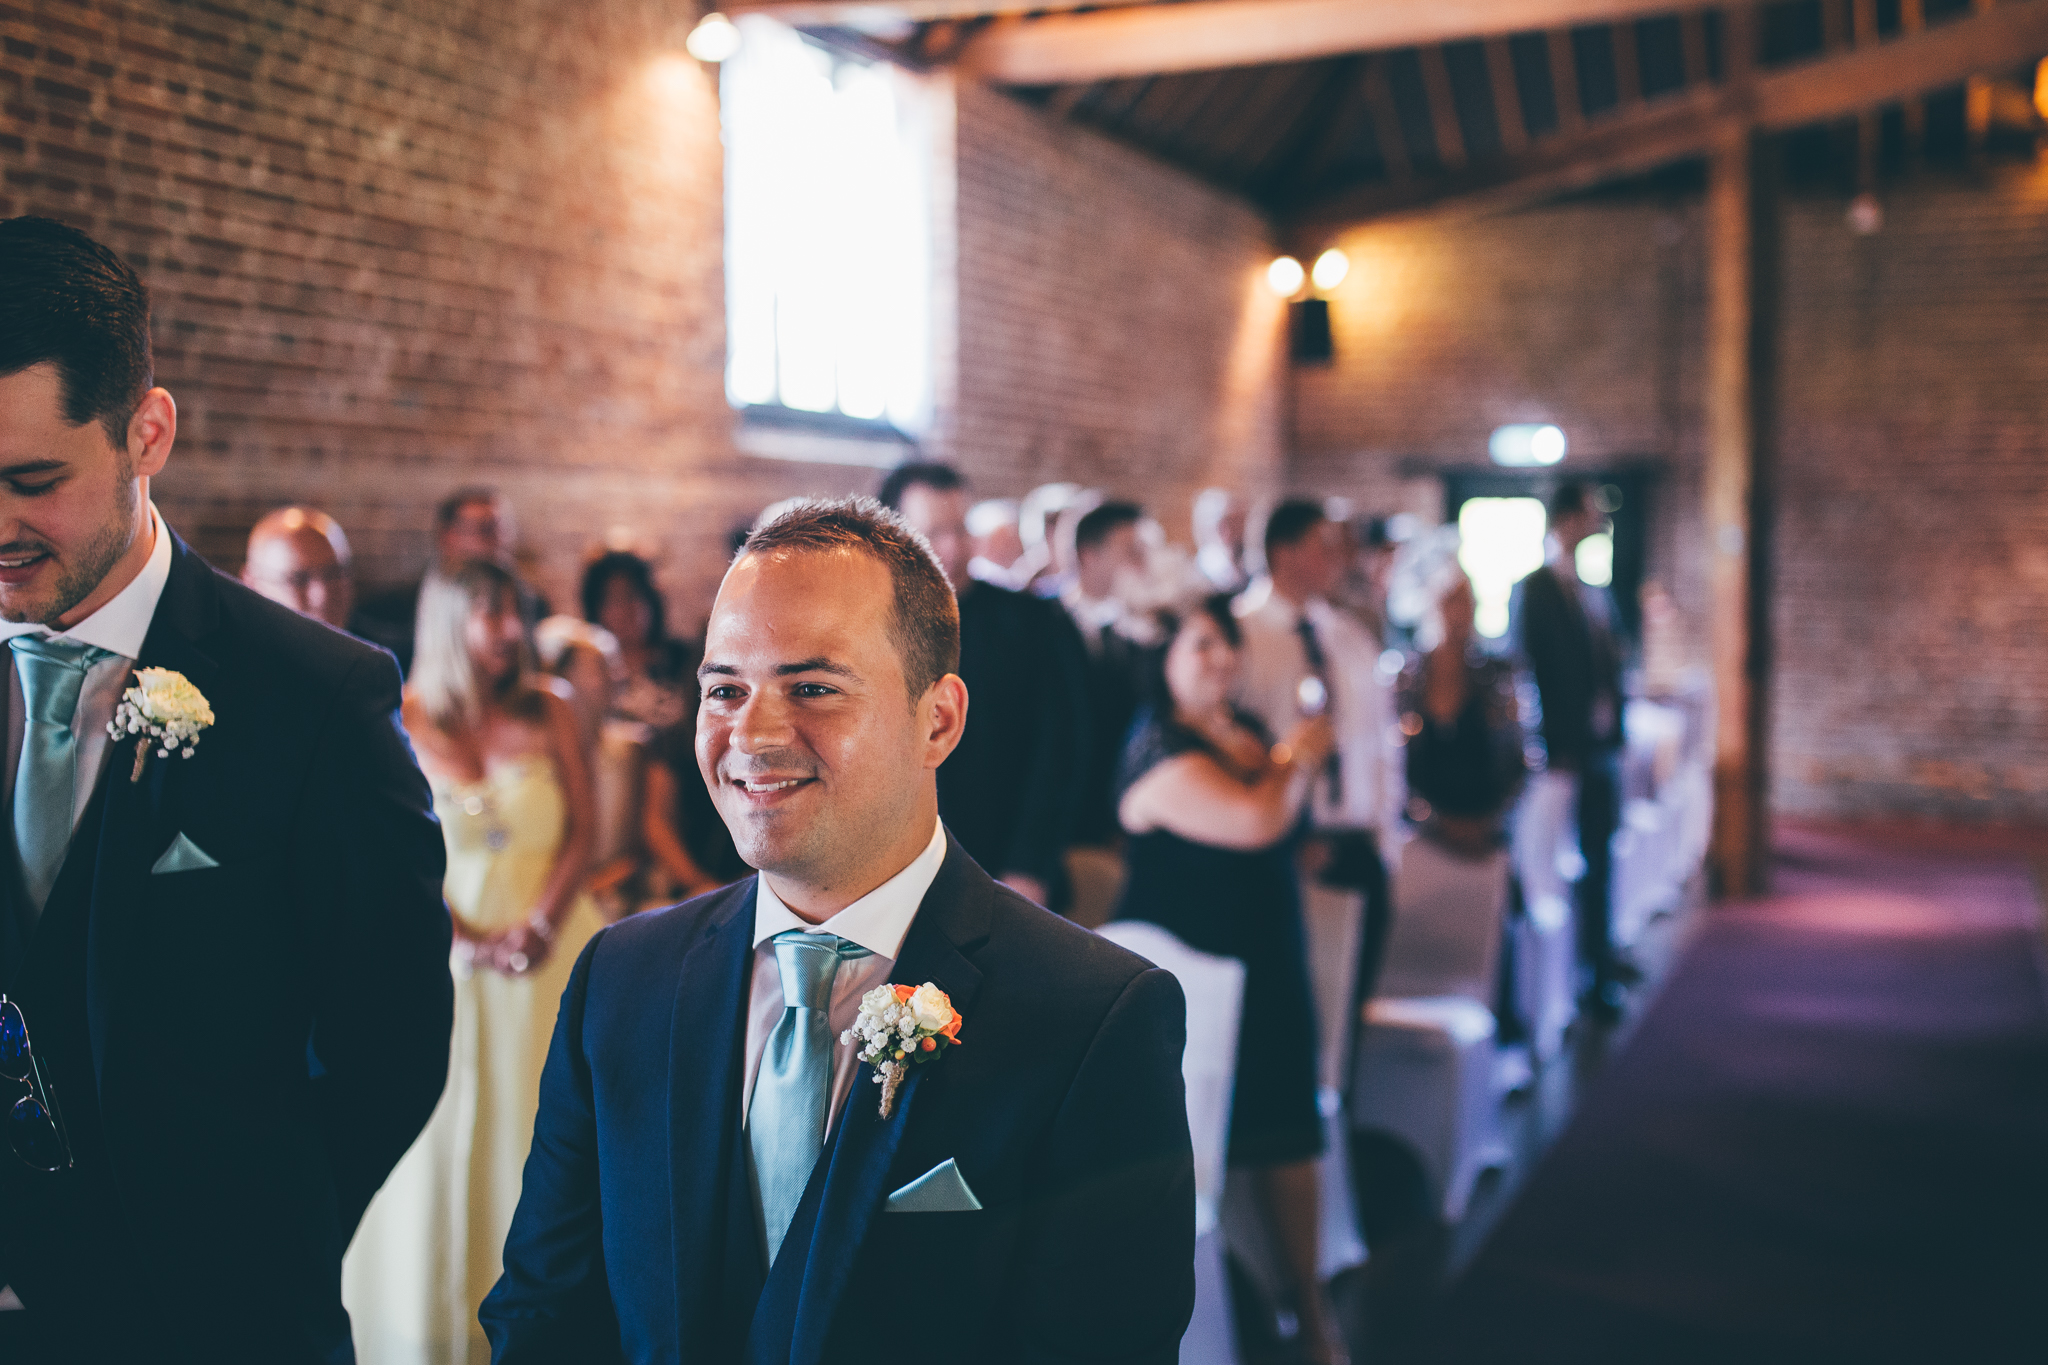 Joanna Nicole Photography Creative artistic wedding photography kent cooling castle barns vintage documentary (25 of 106).jpg